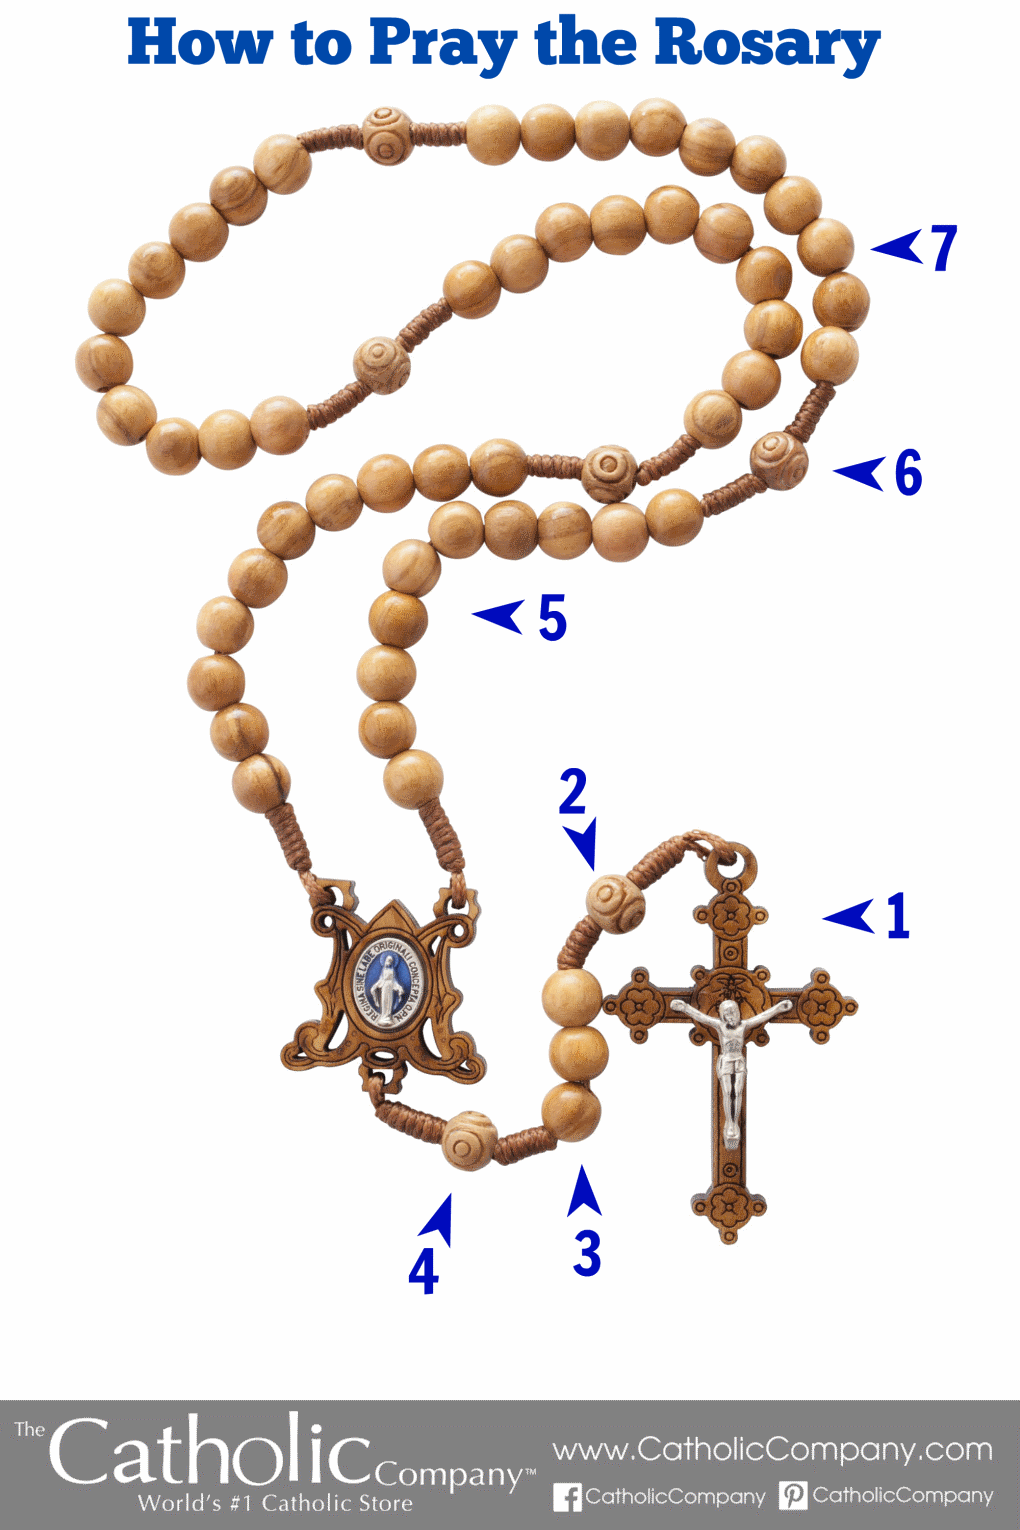 How to Pray the Rosary image